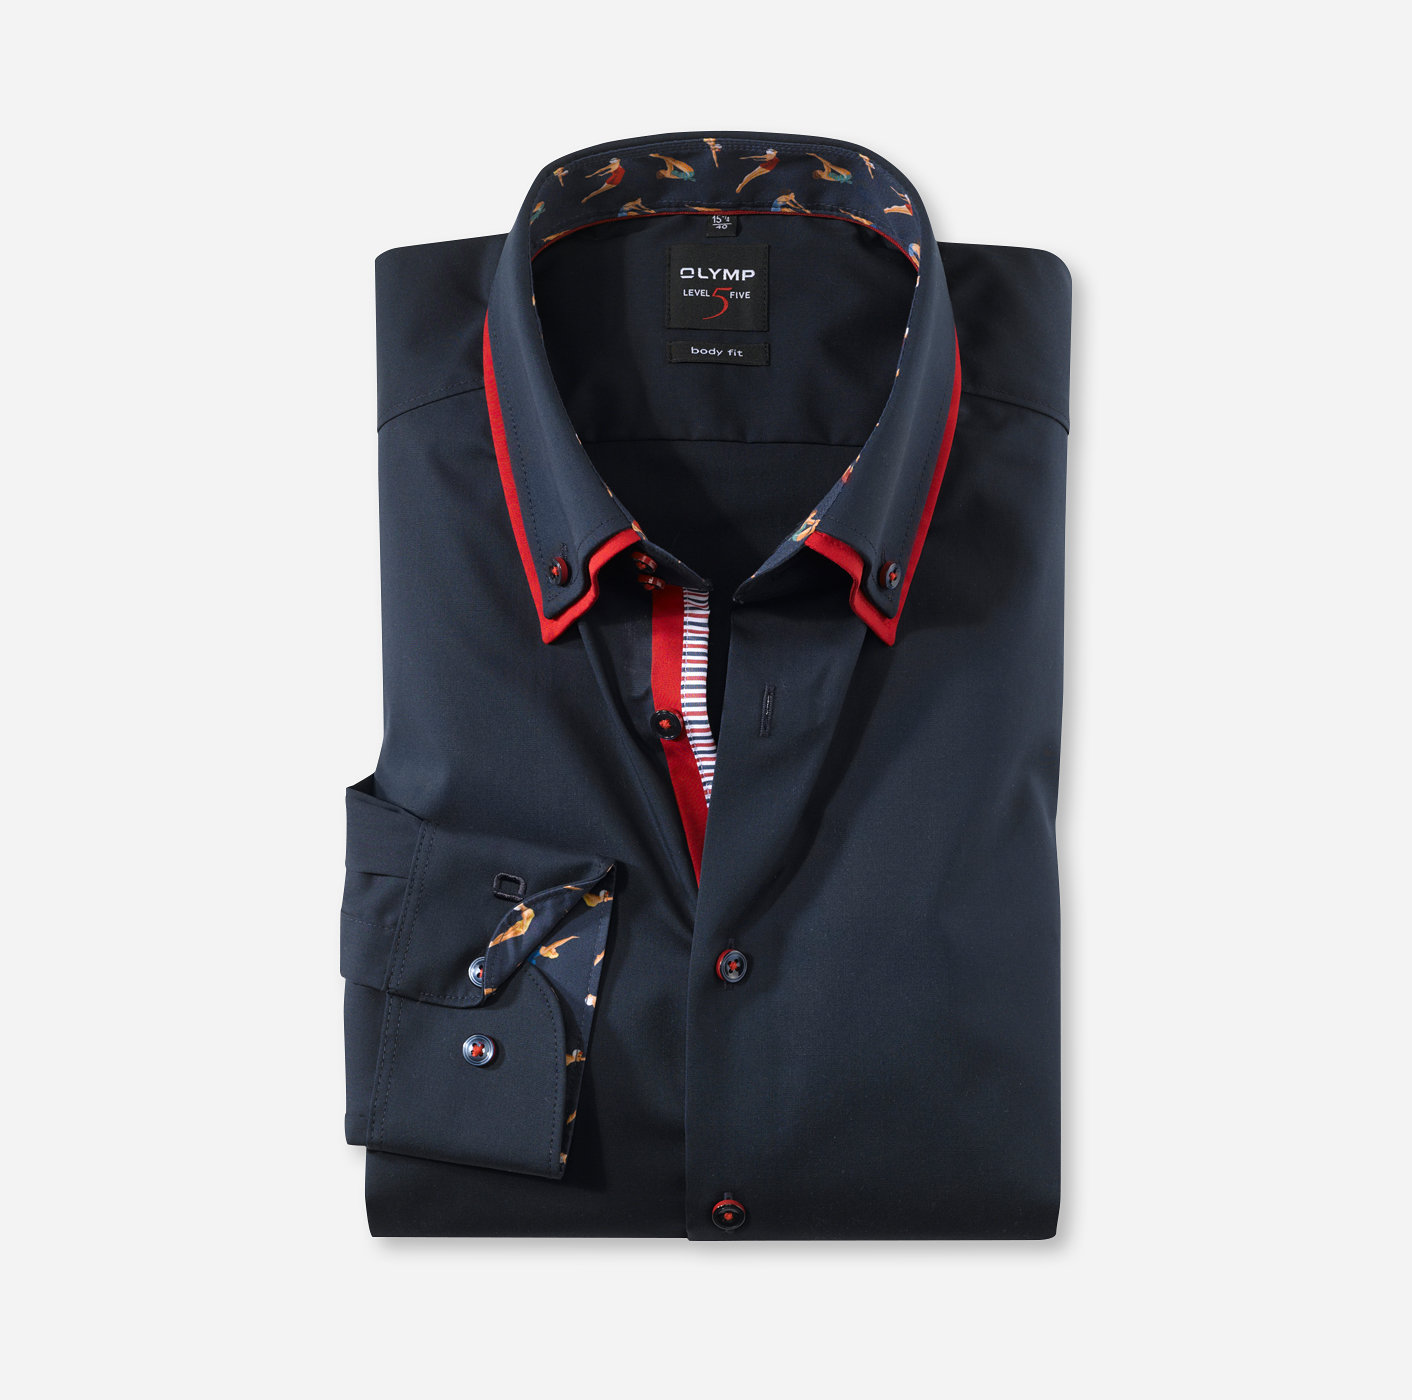 OLYMP Level Five, body fit, Button down | Kobaltblauw 21385408